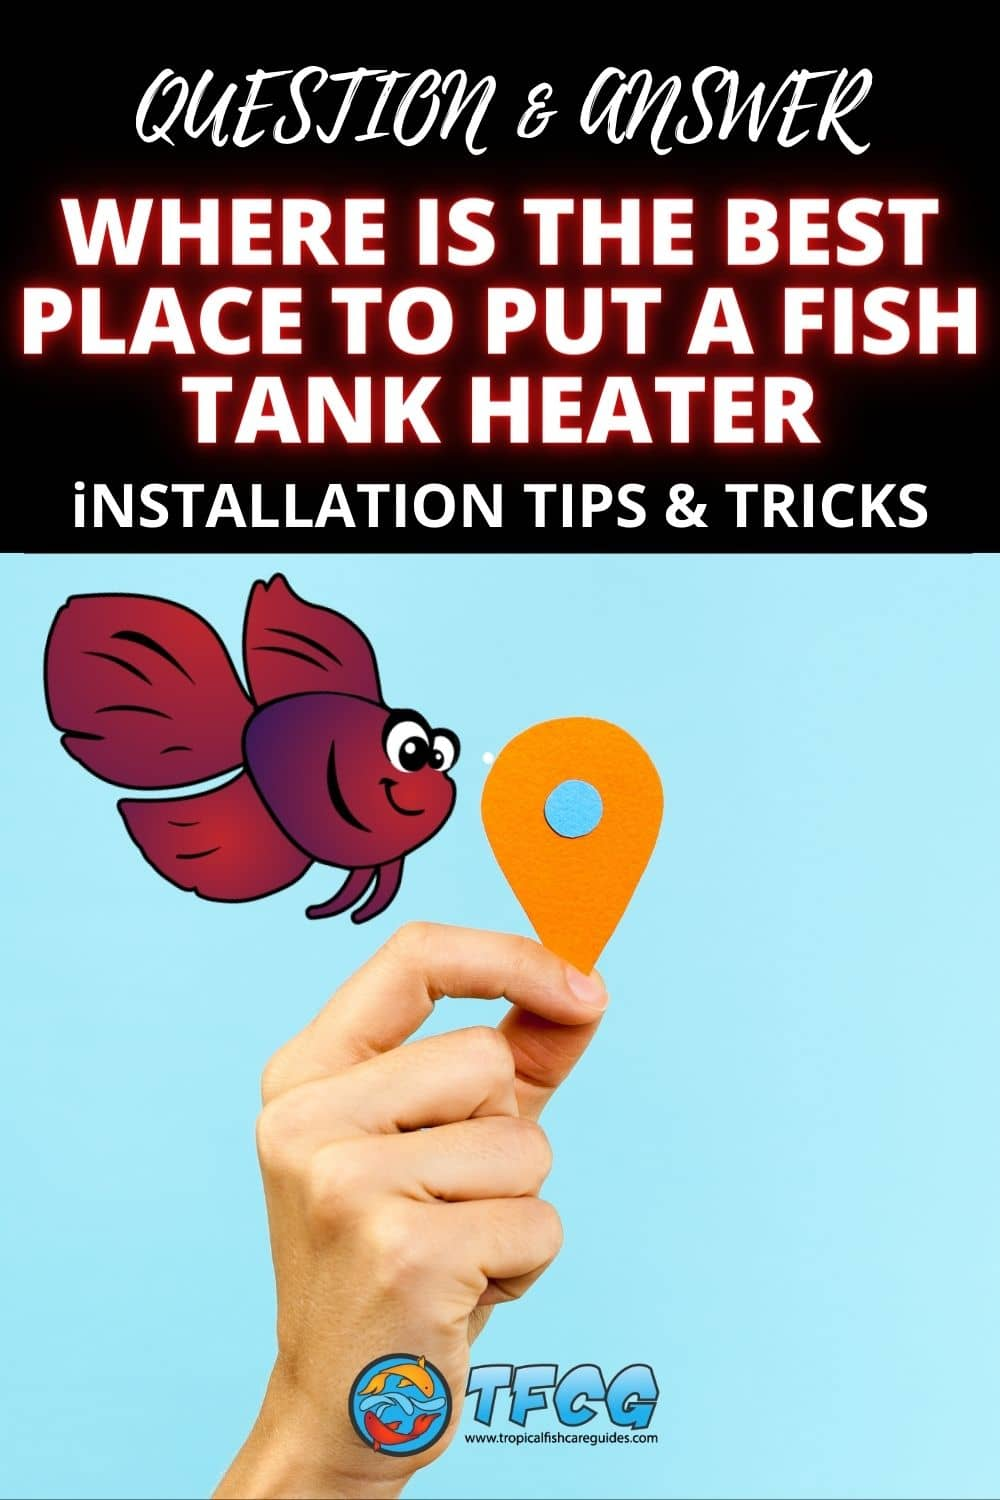 Where Is The Best Place To Put A Fish Tank Heater